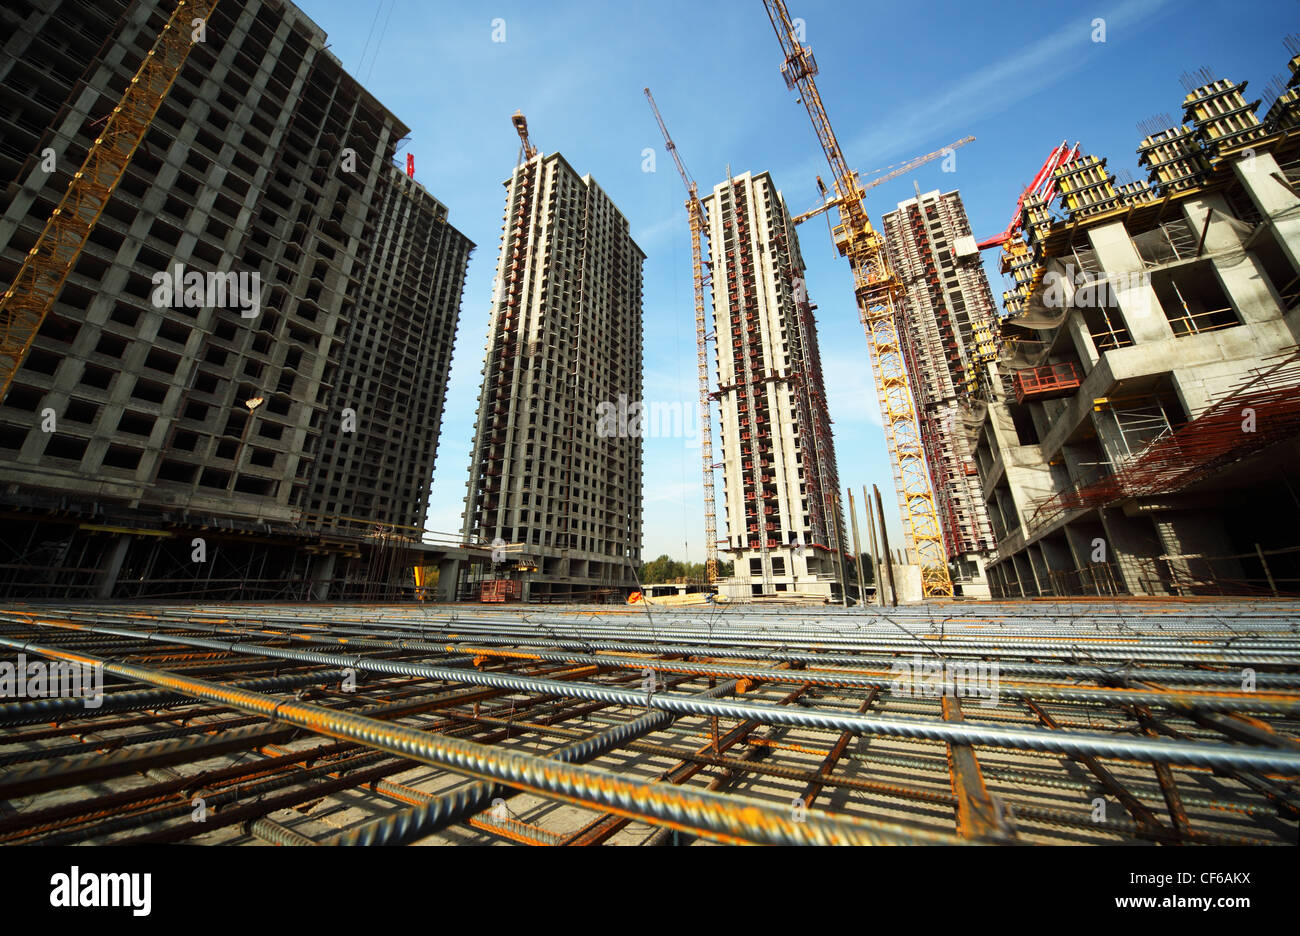 Between tall buildings under construction and cranes under a blue sky Stock Photo